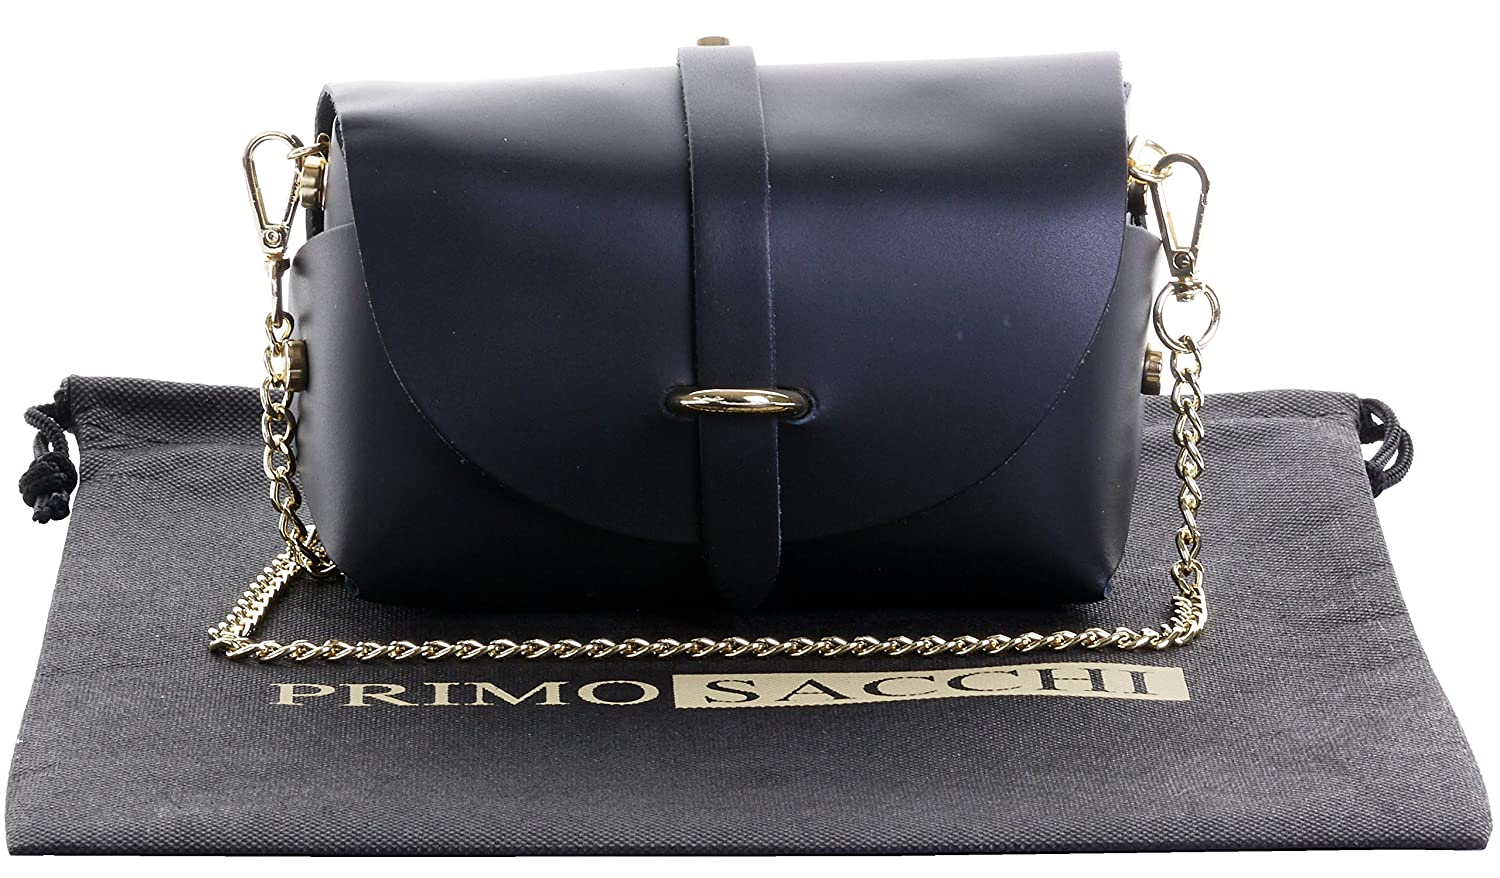 22c99efb6b98 Italian Leather Mini Small Micro Black Shoulder Crossbody Evening Bag With  Metal Chain Strap. Includes Branded Protective Dustbag  Amazon.co.uk  Shoes    ...